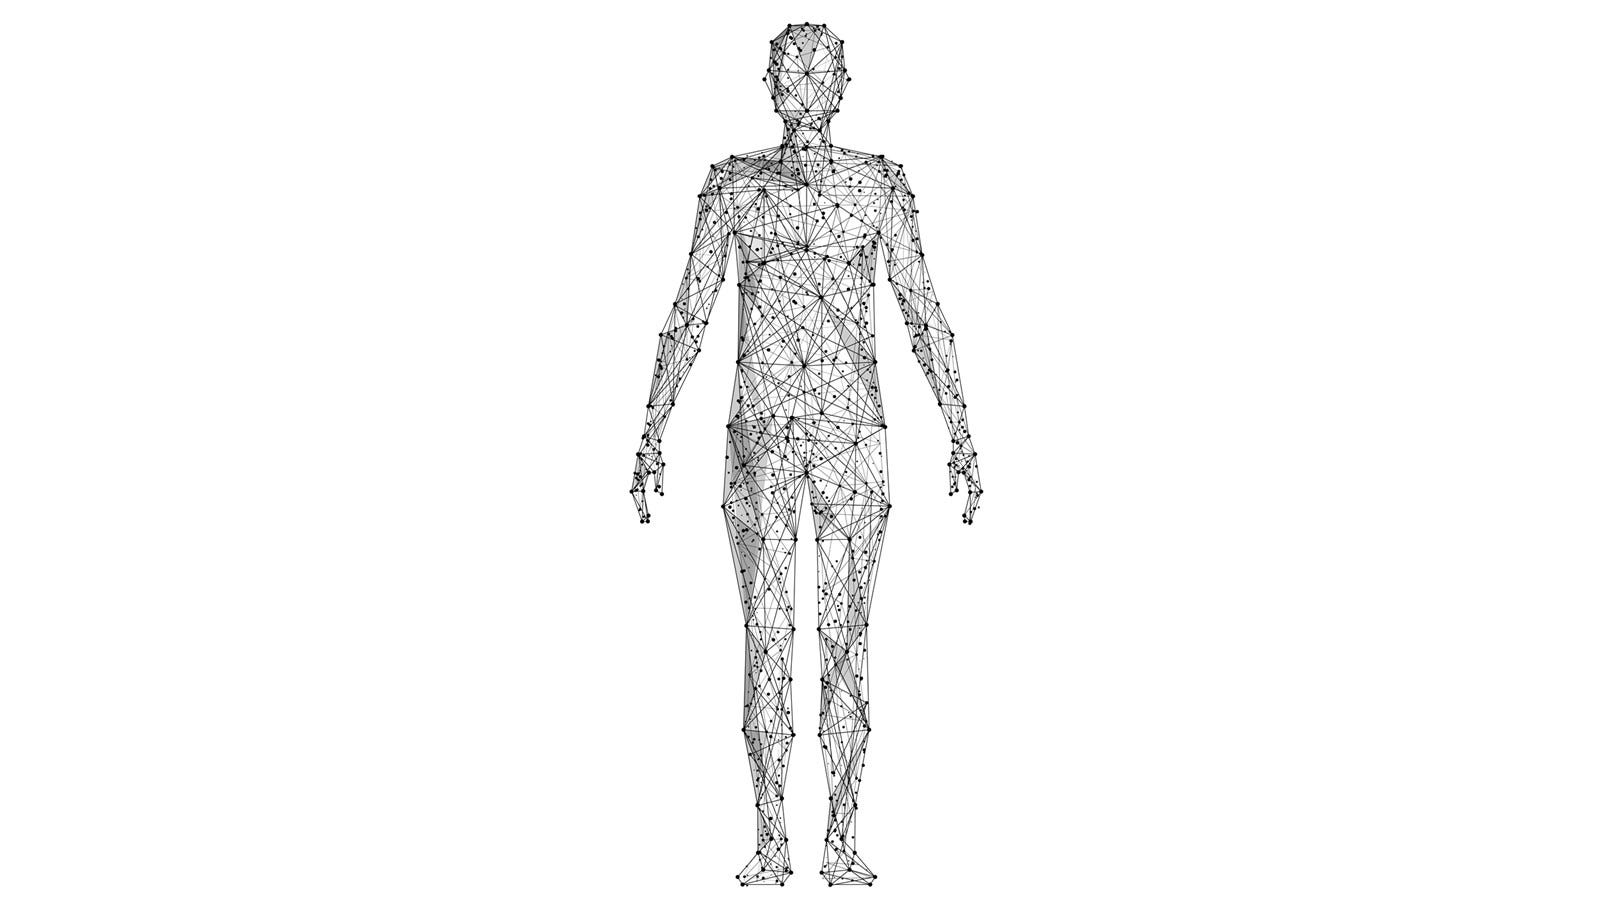 Thin lines and dots all over a drawing of a human body.